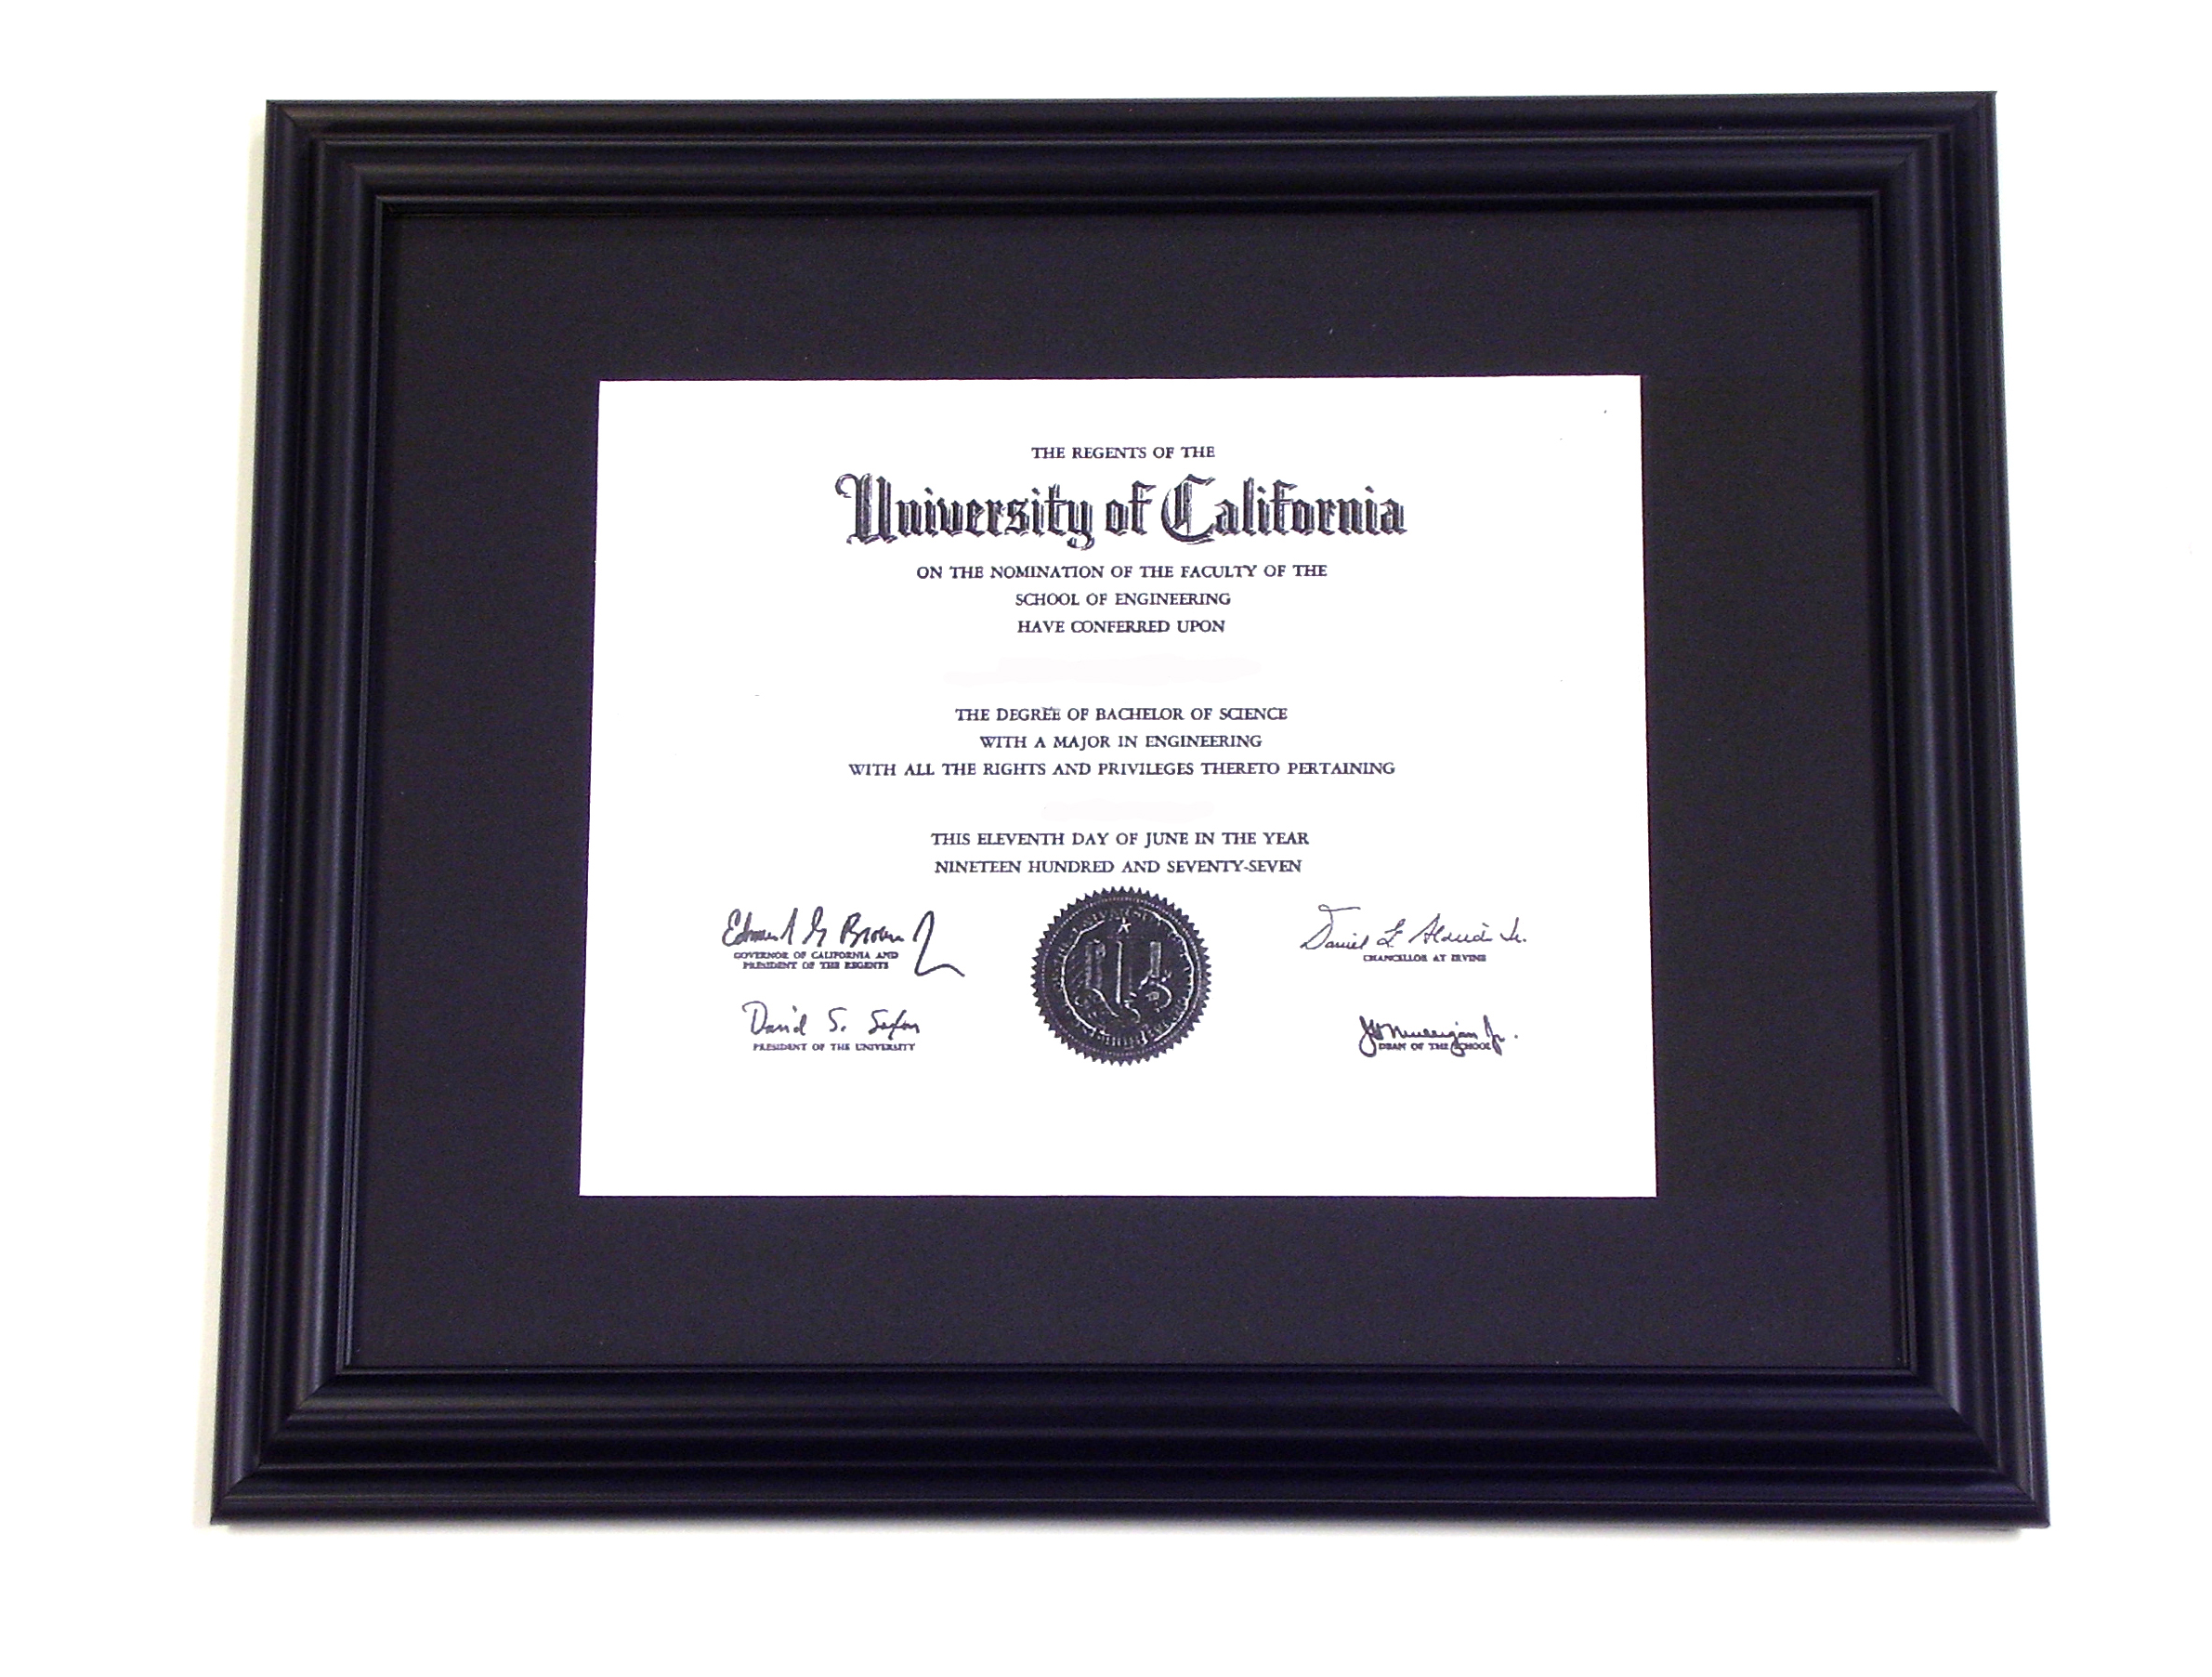 italian lacquer shaded brandy diploma frame with 5x7 image and tassel holder